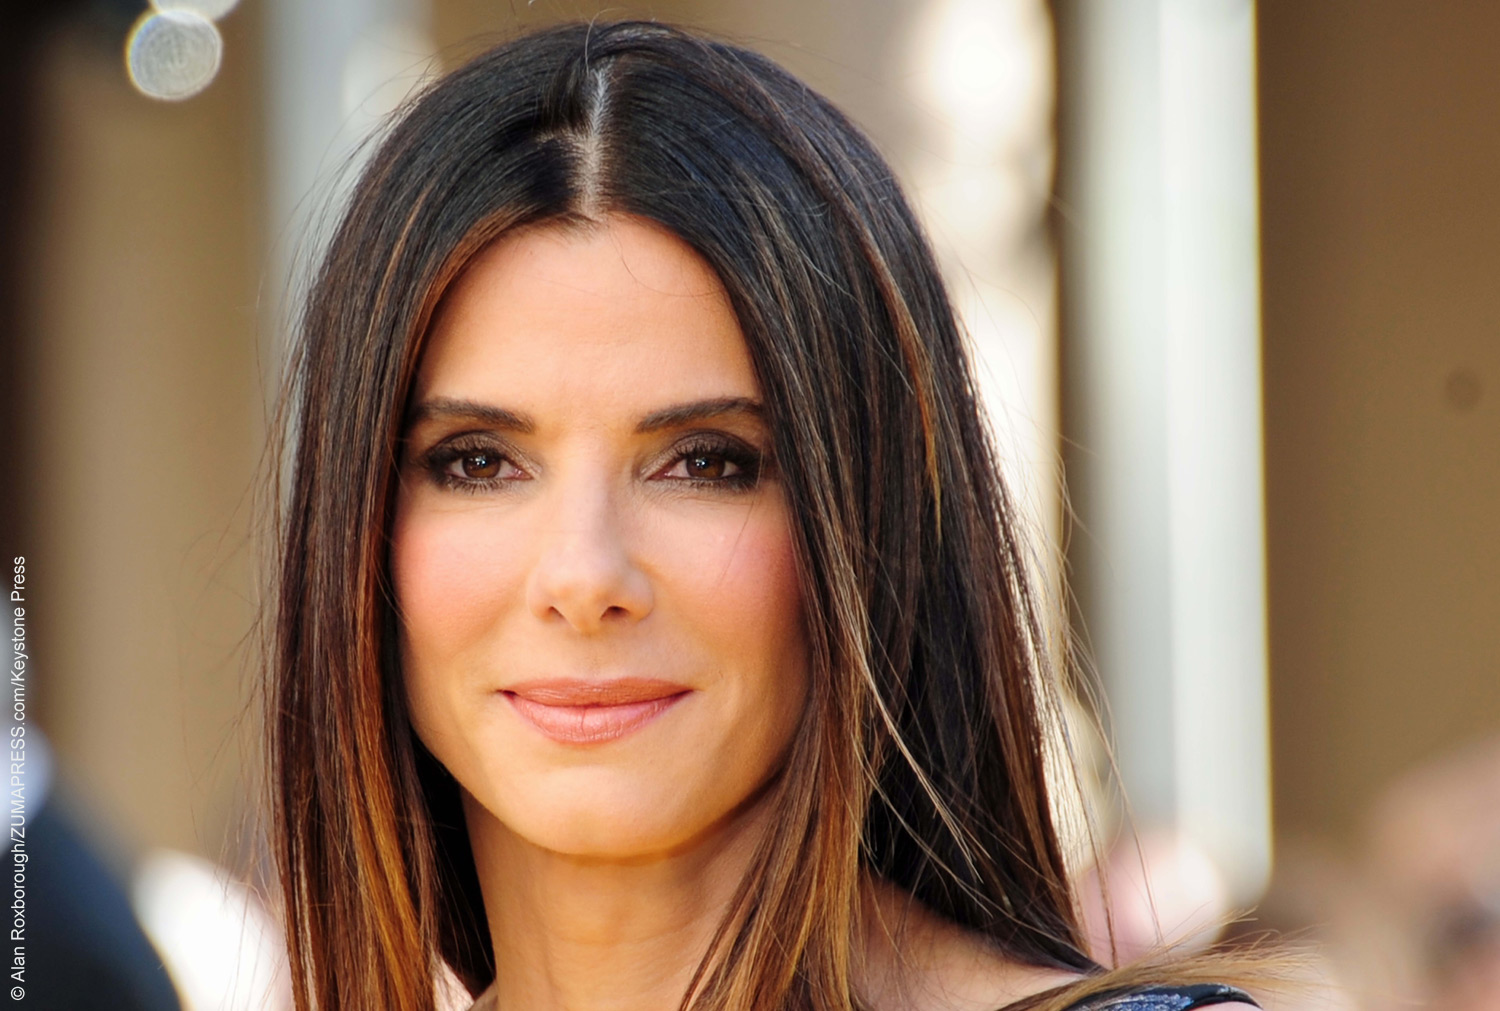 Sandra Bullock: America's sweetheart at 50 - CNN